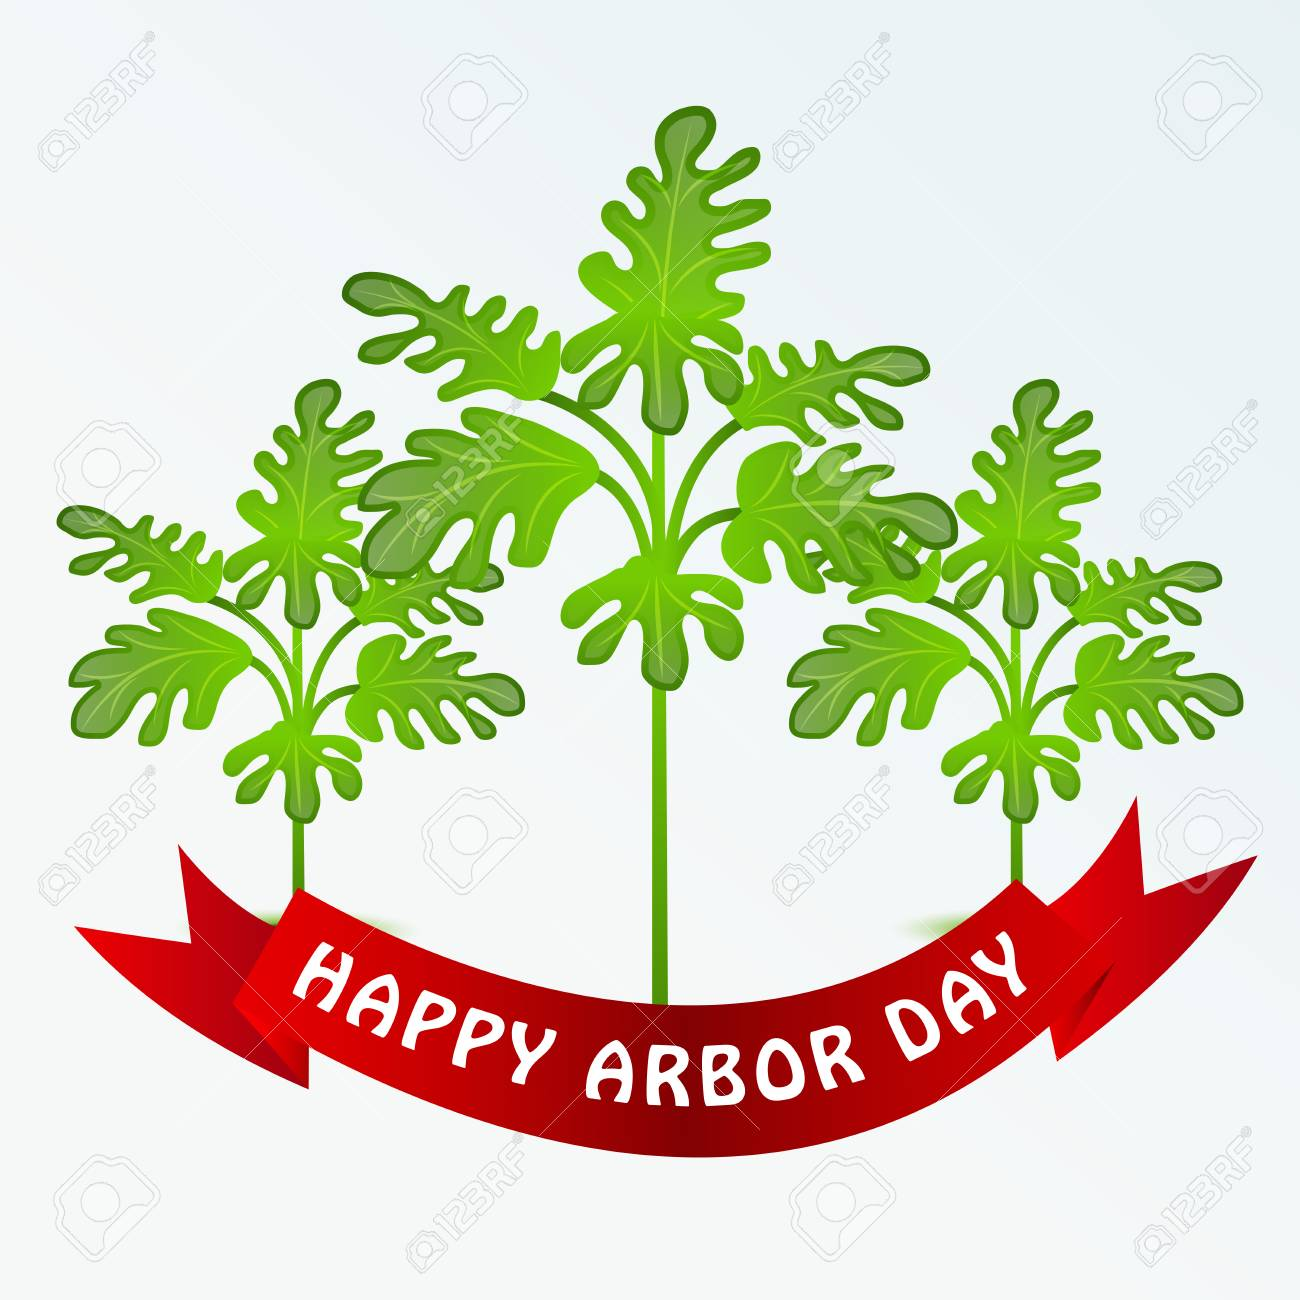 Happy Arbor Day With Tree Illustration On Light Background 1300x1300